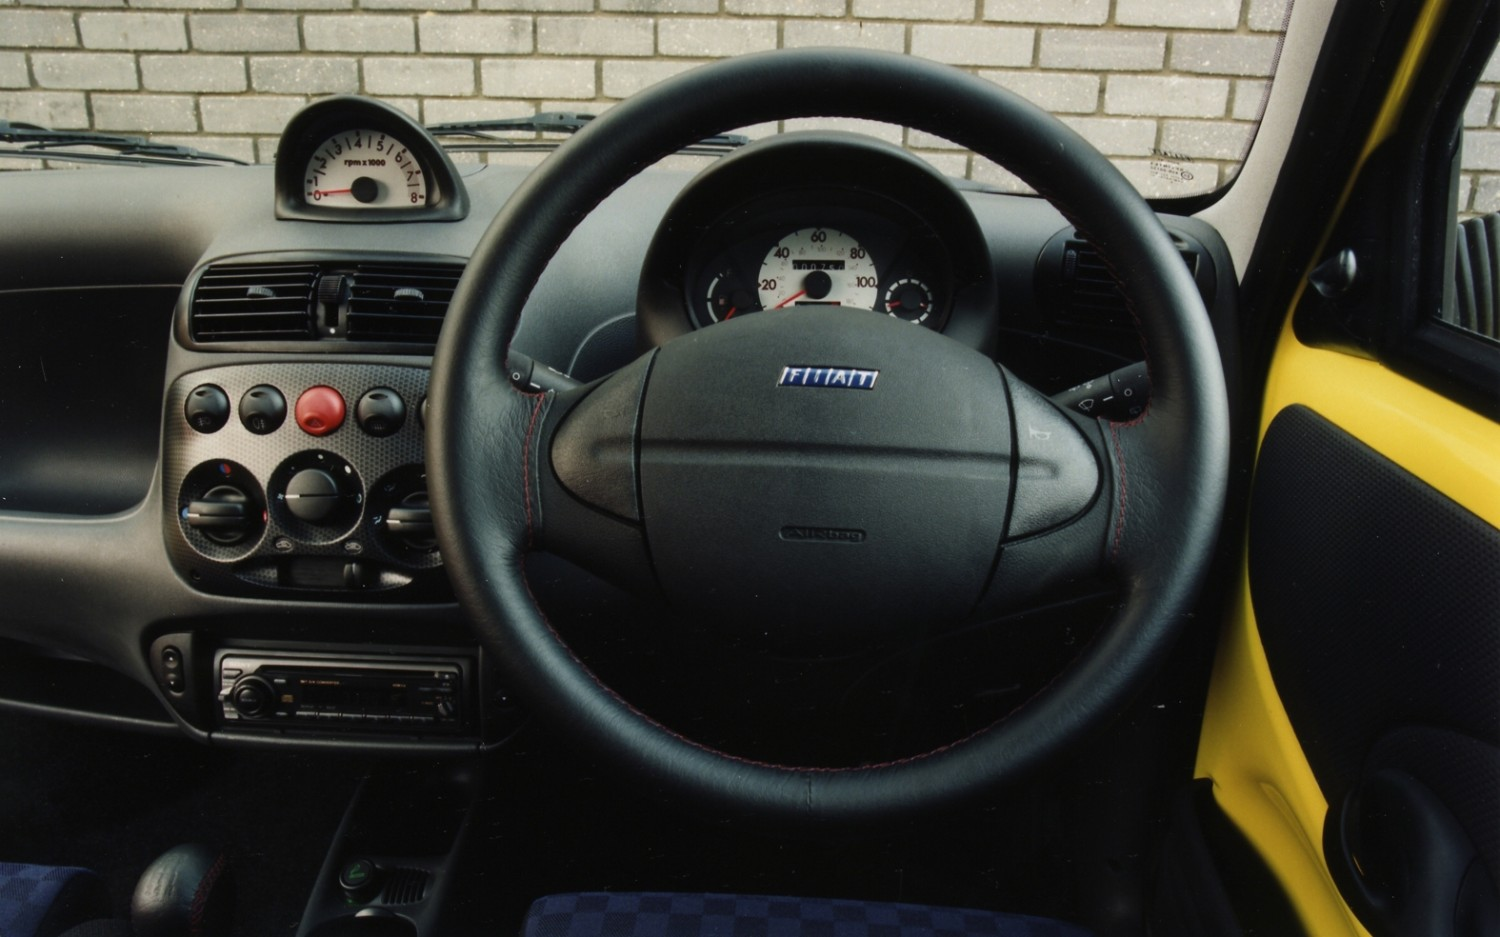 seicento in sporting media cars fiat hatchback ashurst used